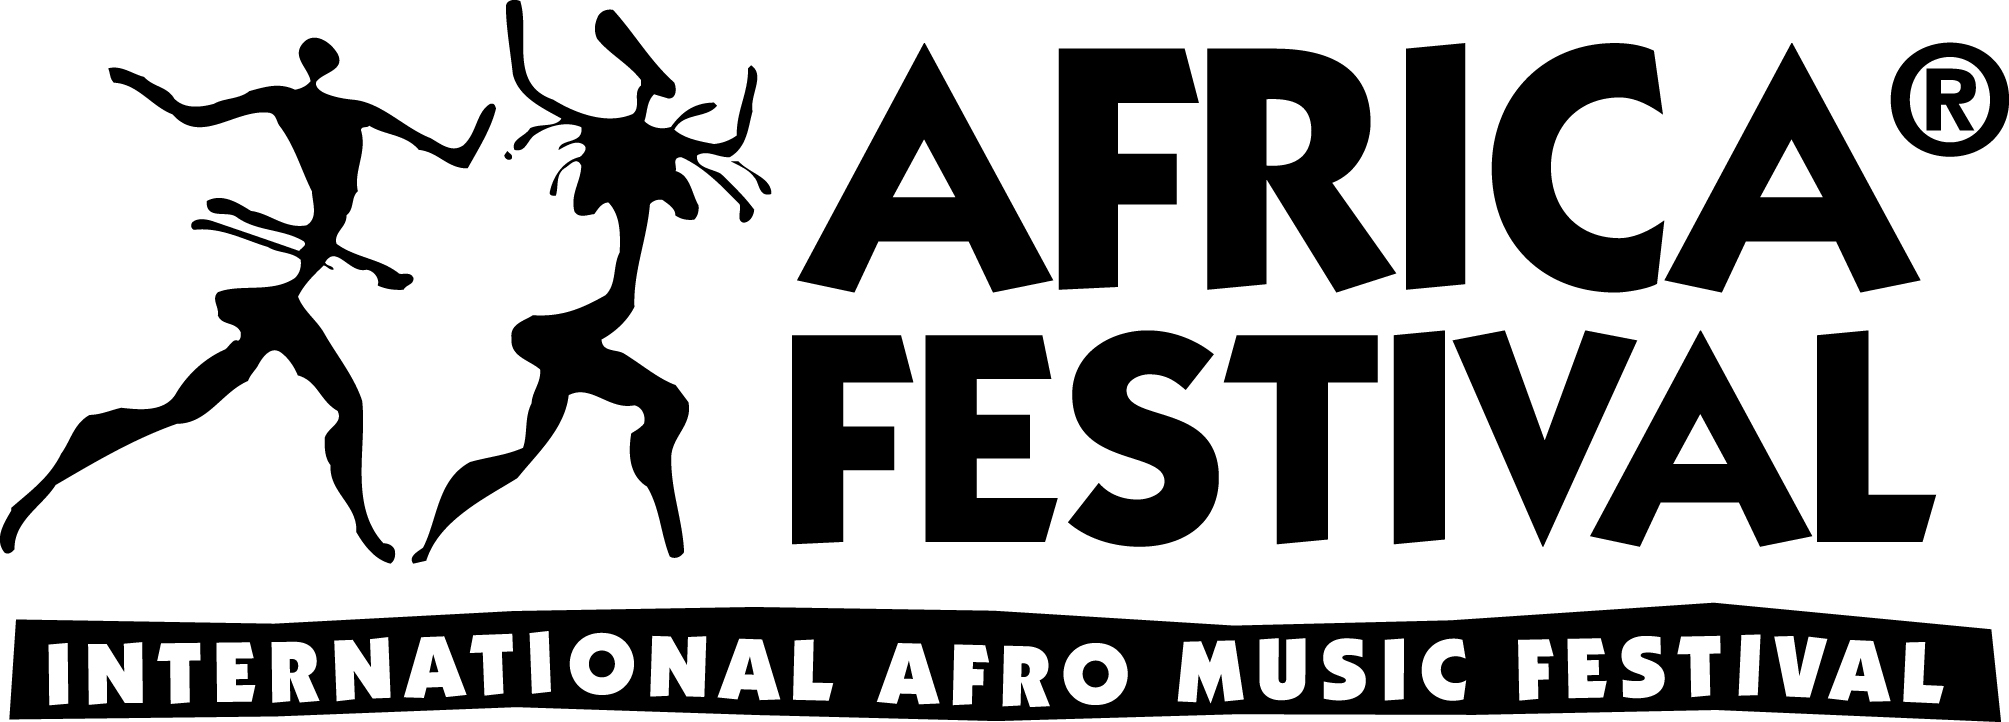 Download Africa Festival © International Africa Festival Würzburg